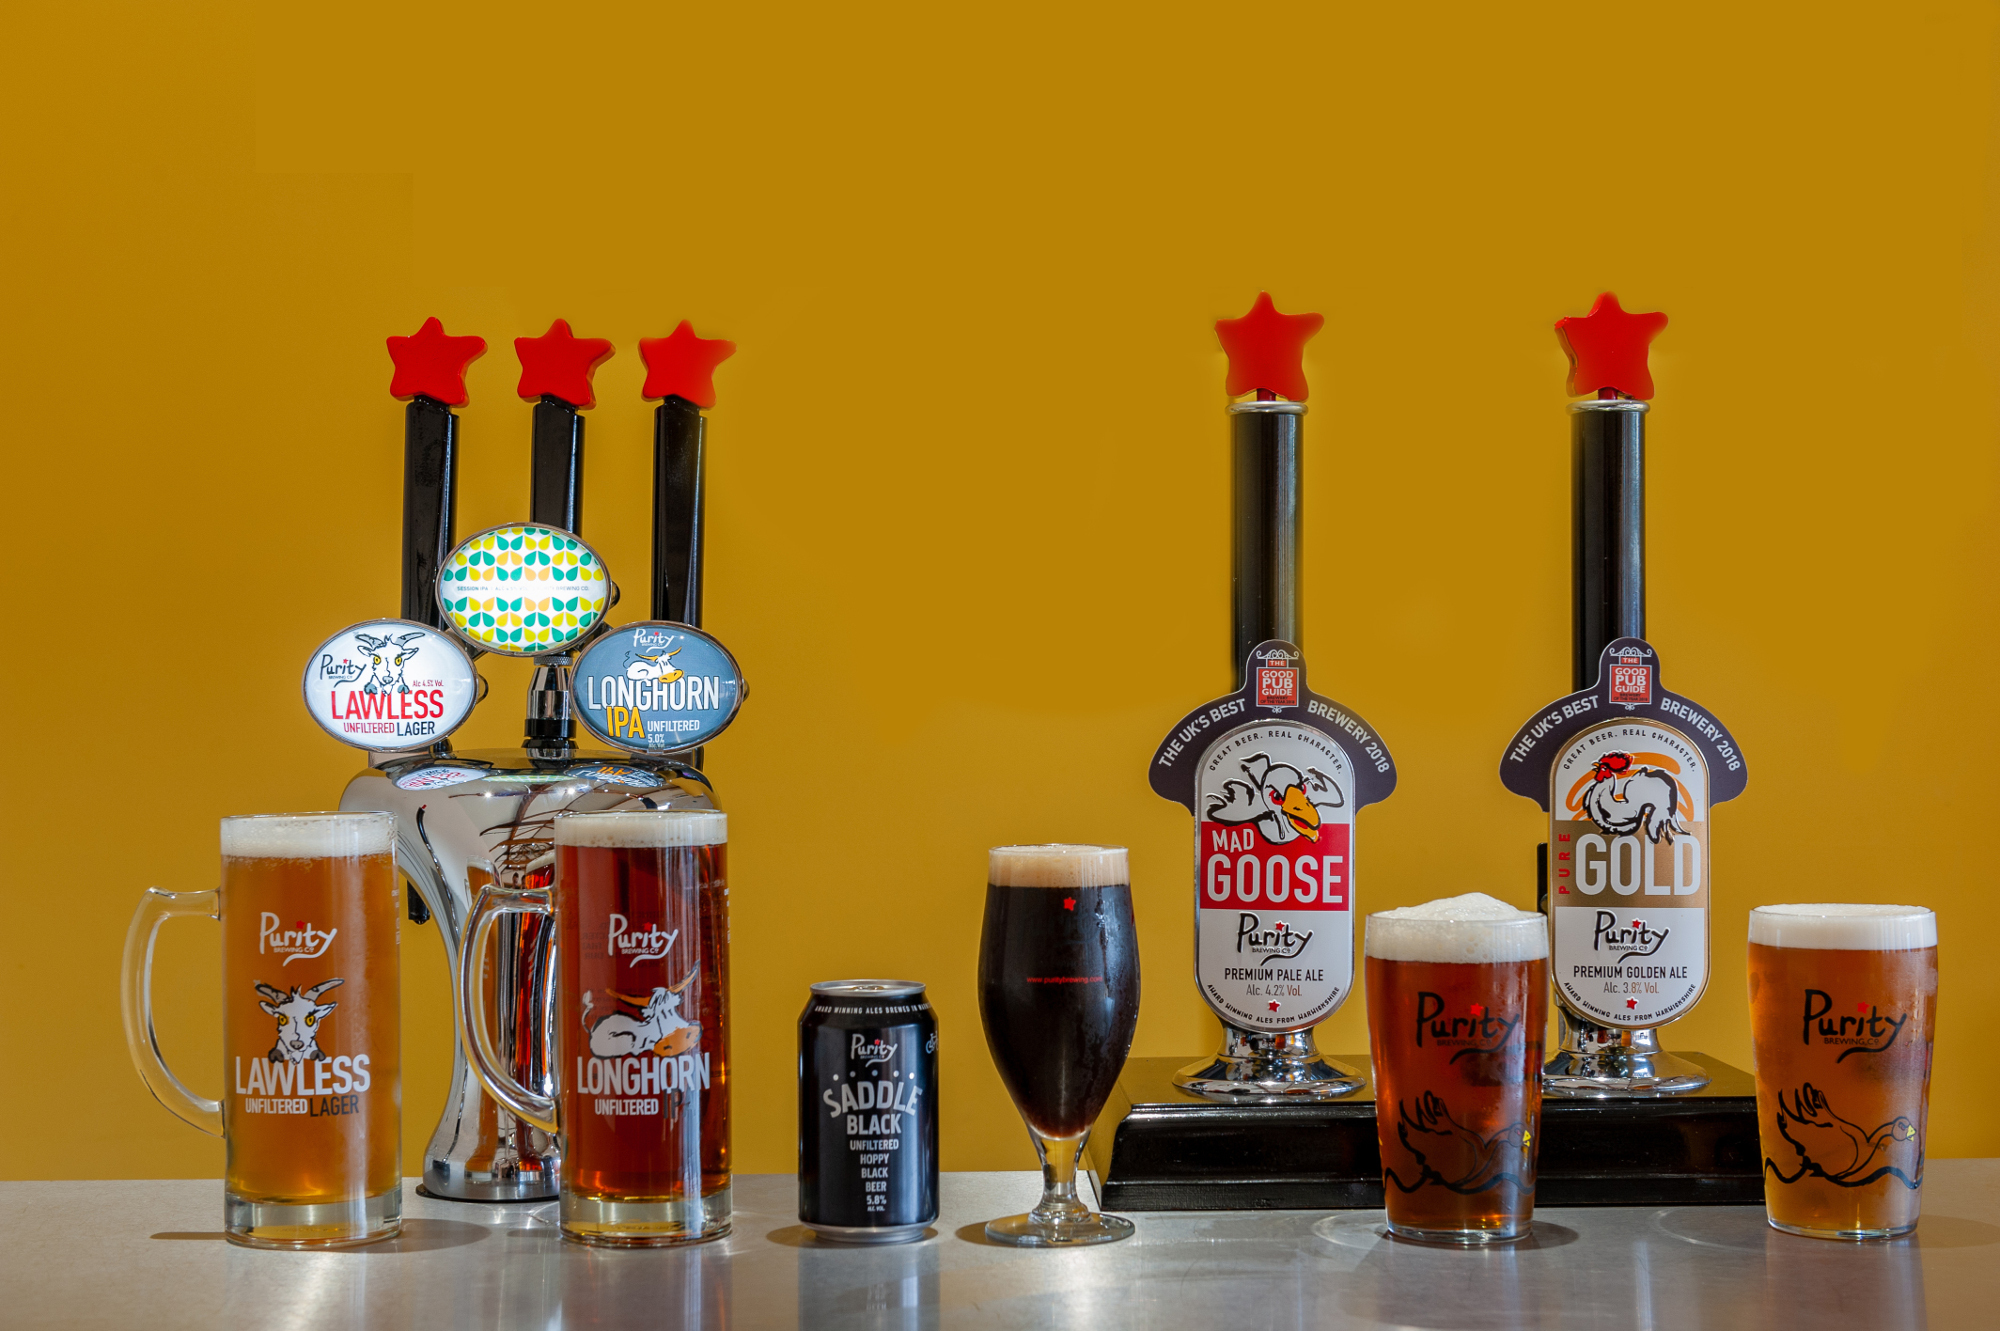 Purity racks up five medals at the International Beer Challenge